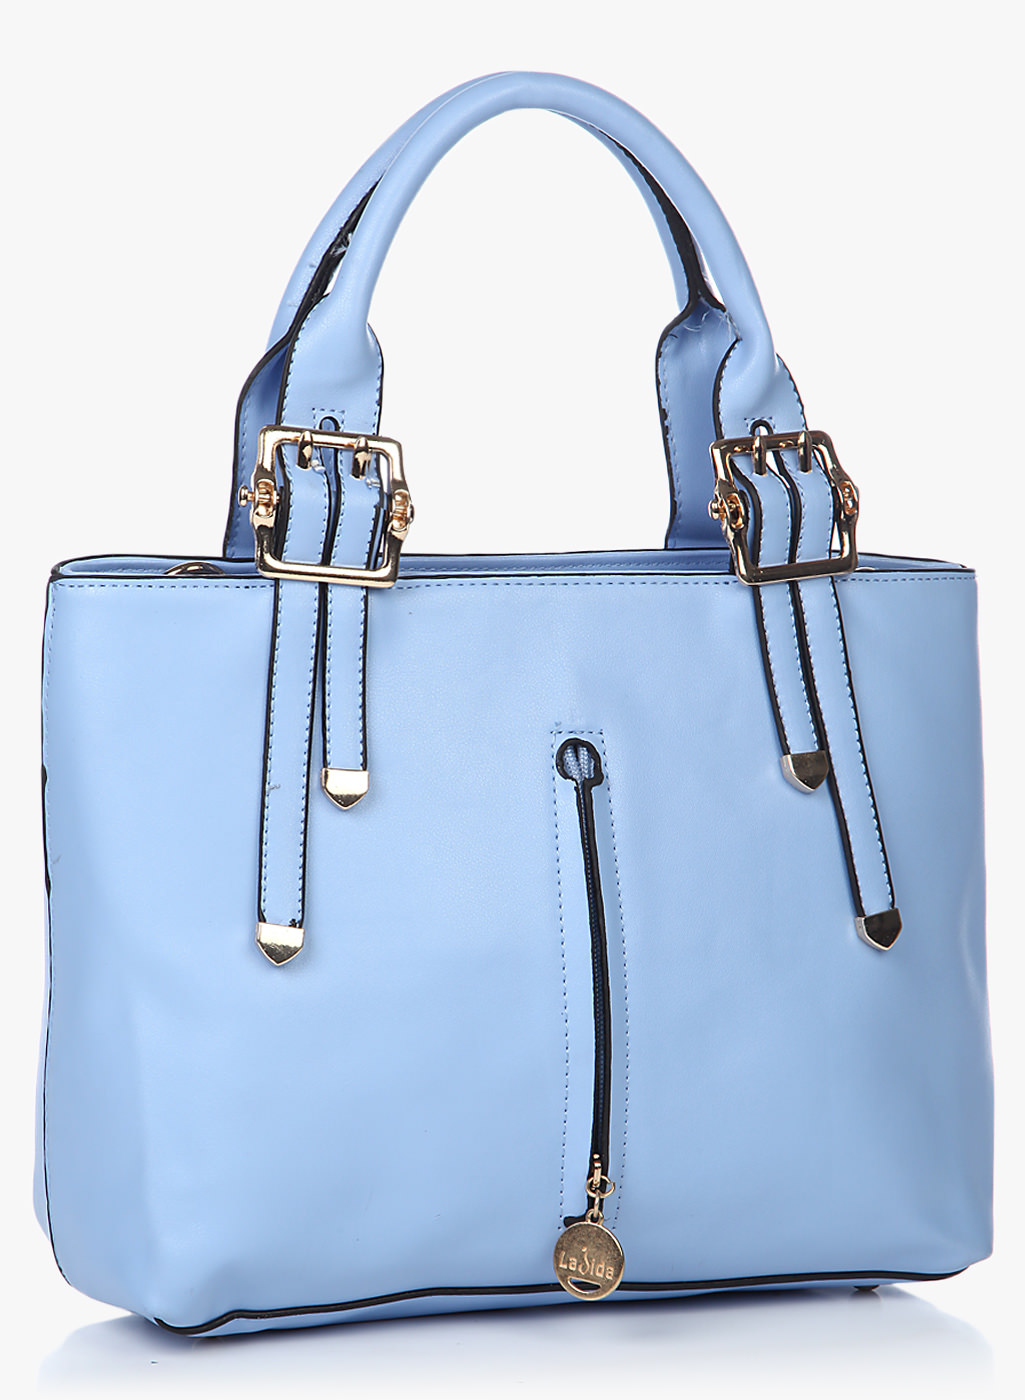 Ladida Blue Handbag